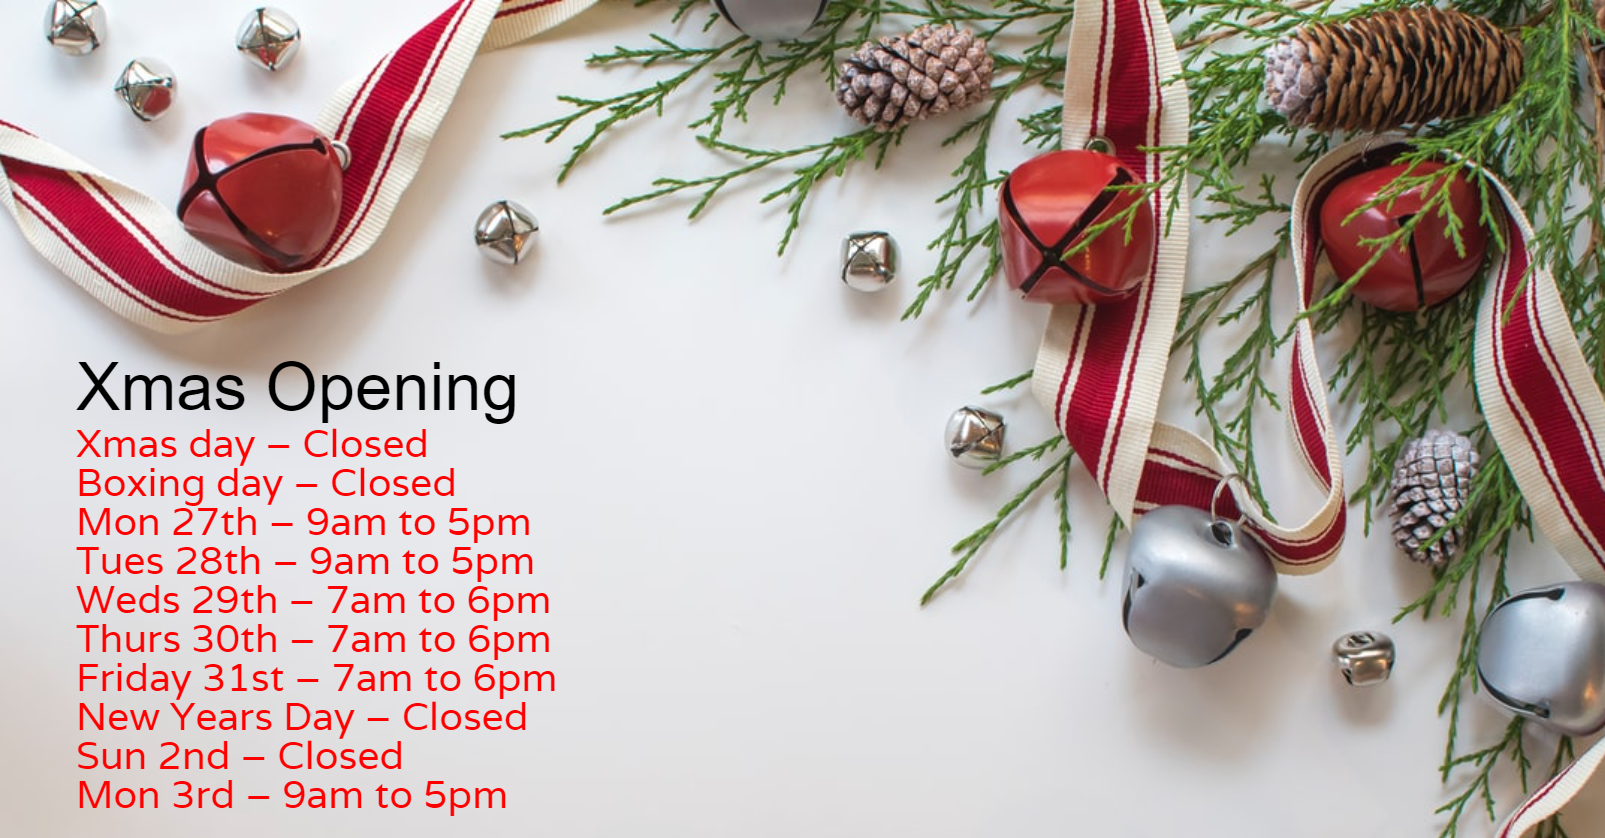 compost for sale in Halifax and Huddersfield